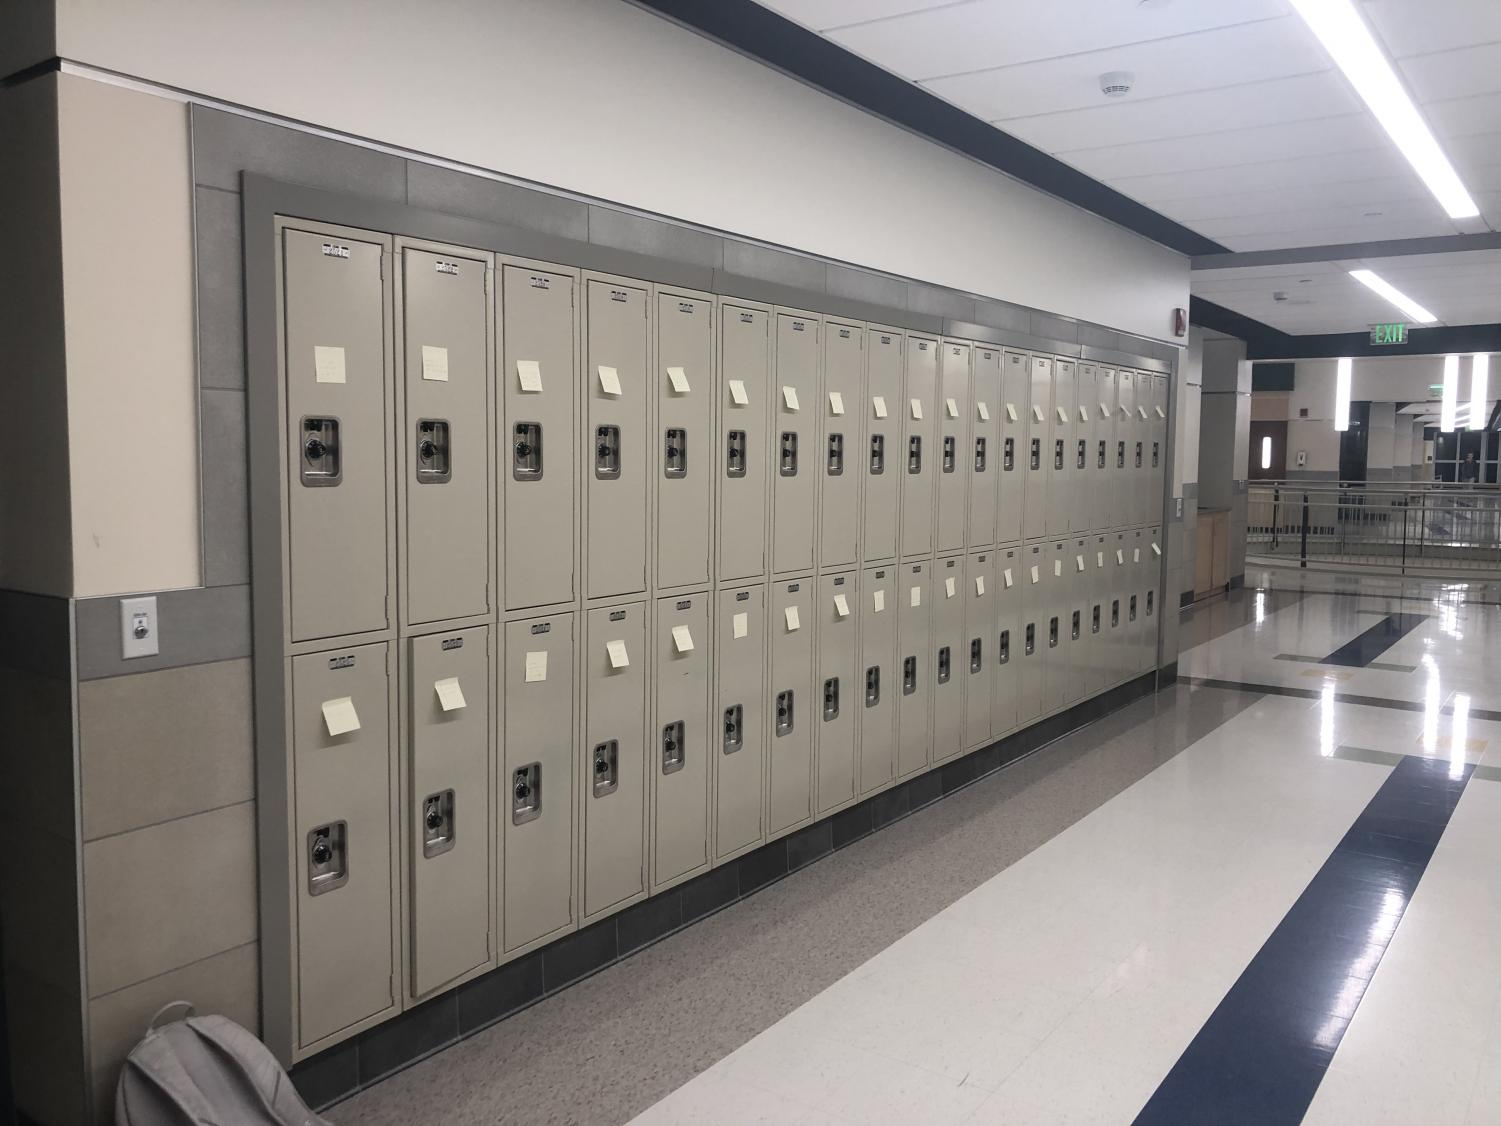 On+Friday%2C+Feb.+8%2C+lockers+at+Abington+High+School+were+lined+with+sticky+notes+reminding+students+that+they+mattered